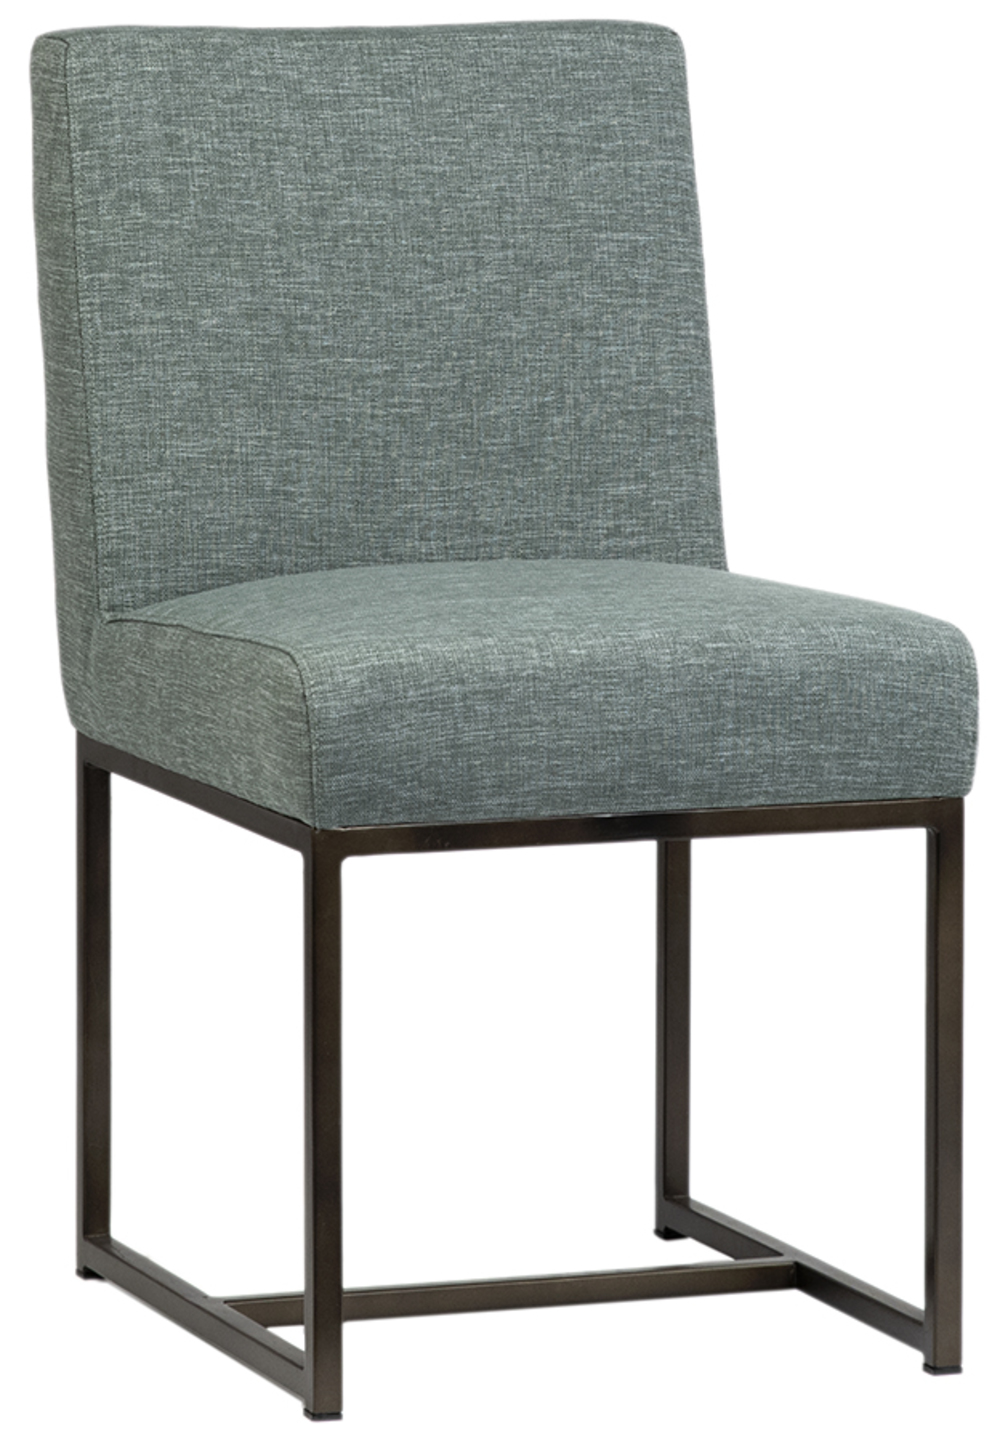 Dovetail Furniture - Orila Dining Chair